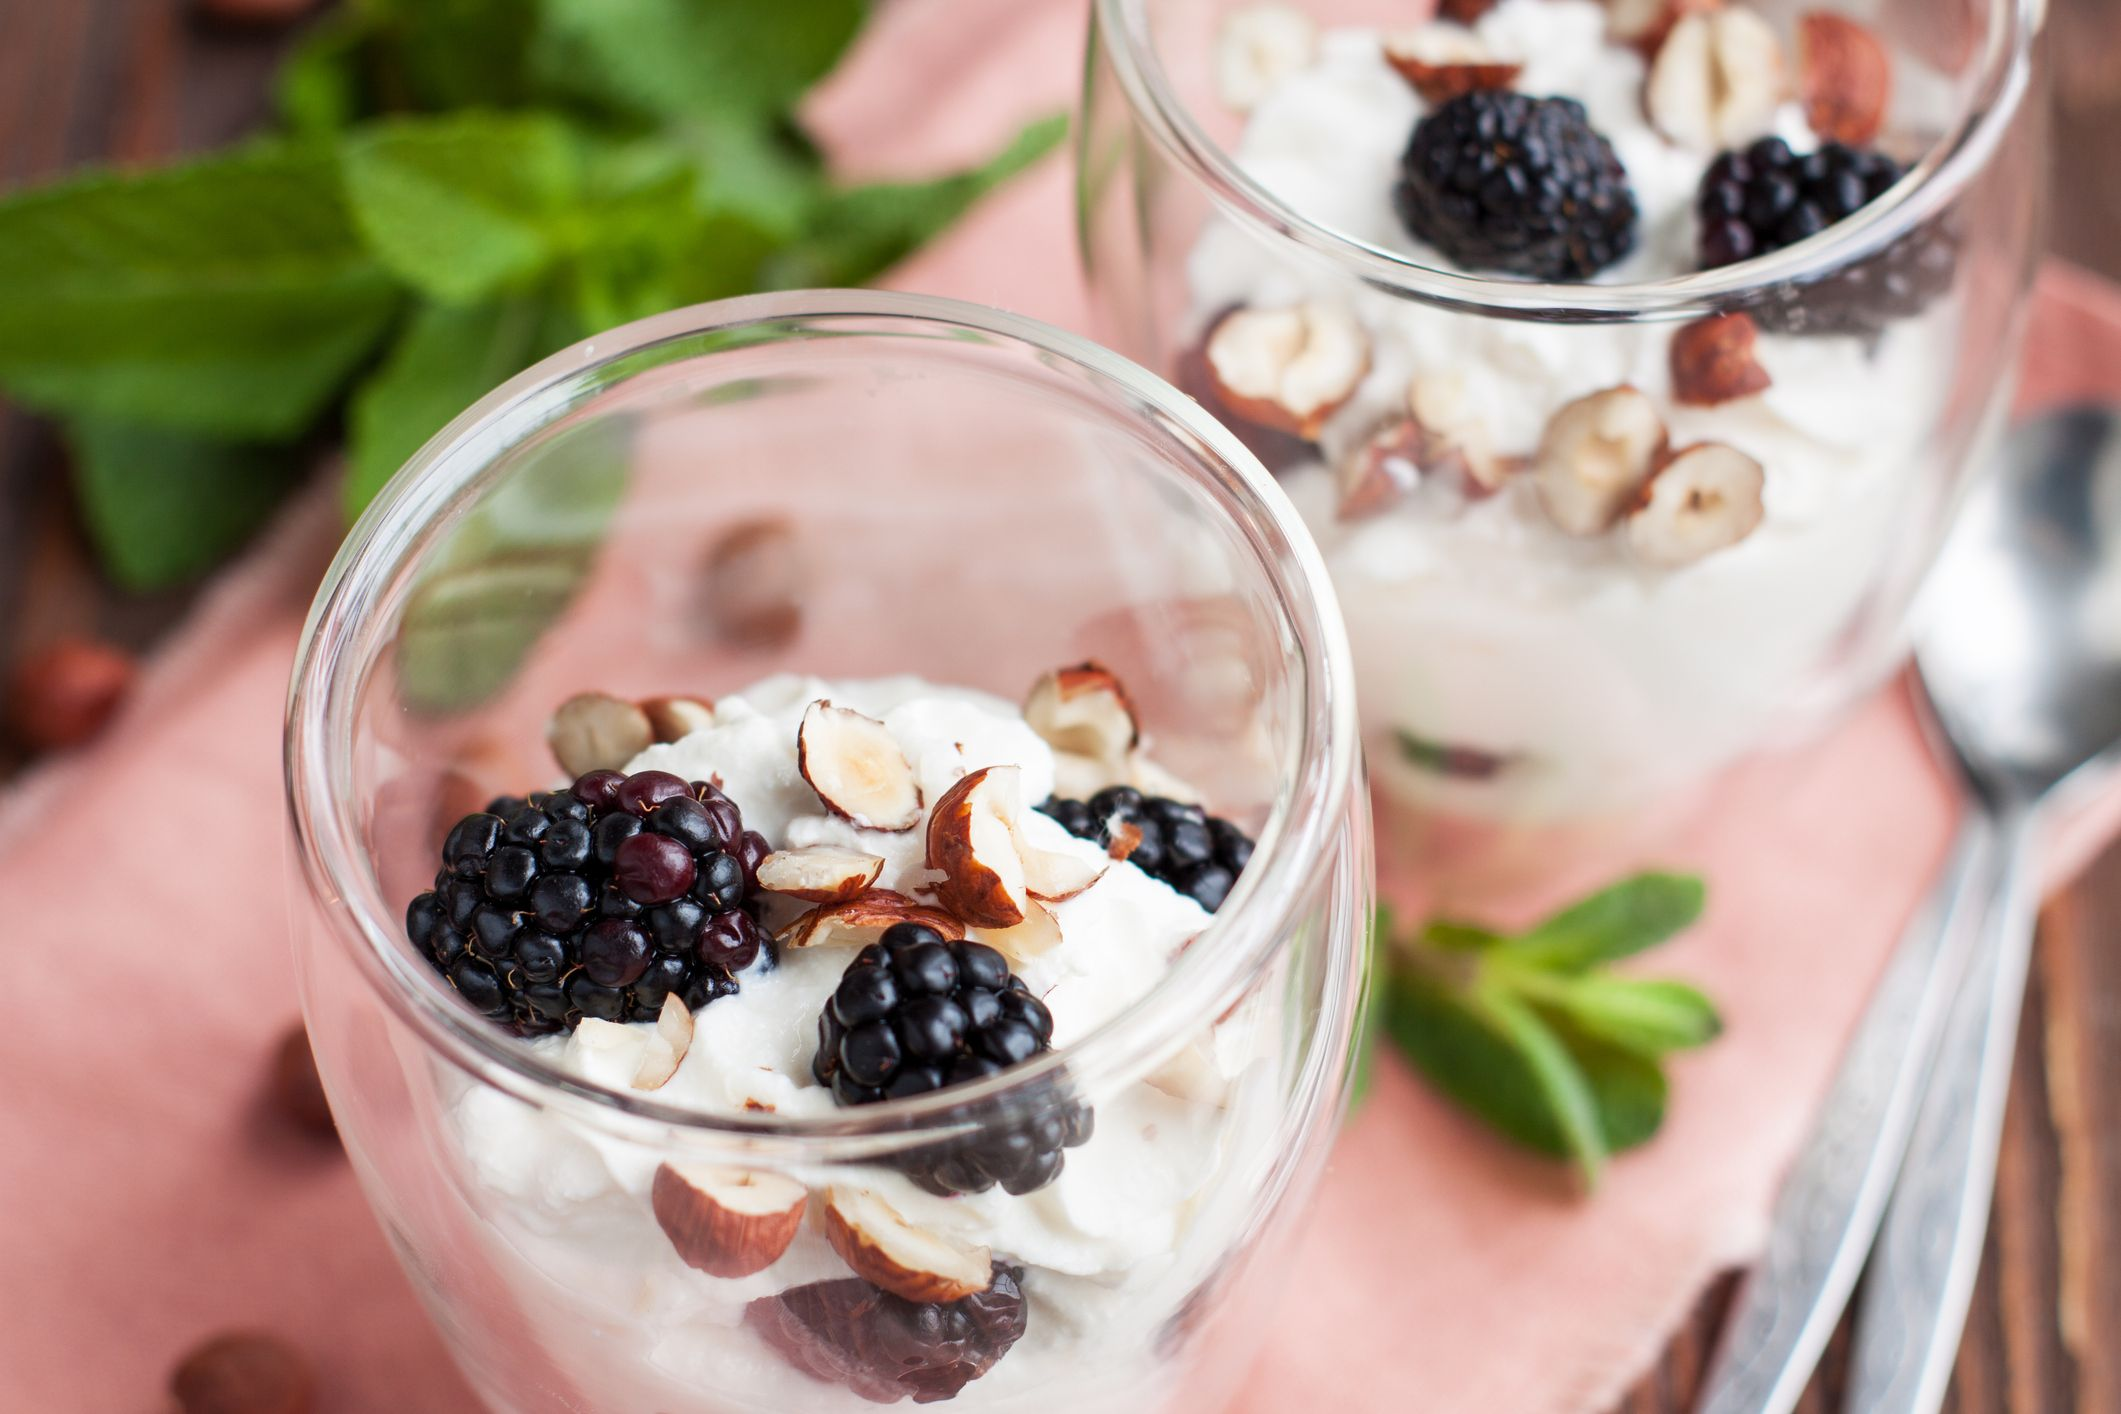 20 Foods Making You Gain Weight Diet Foods That Are Fattening